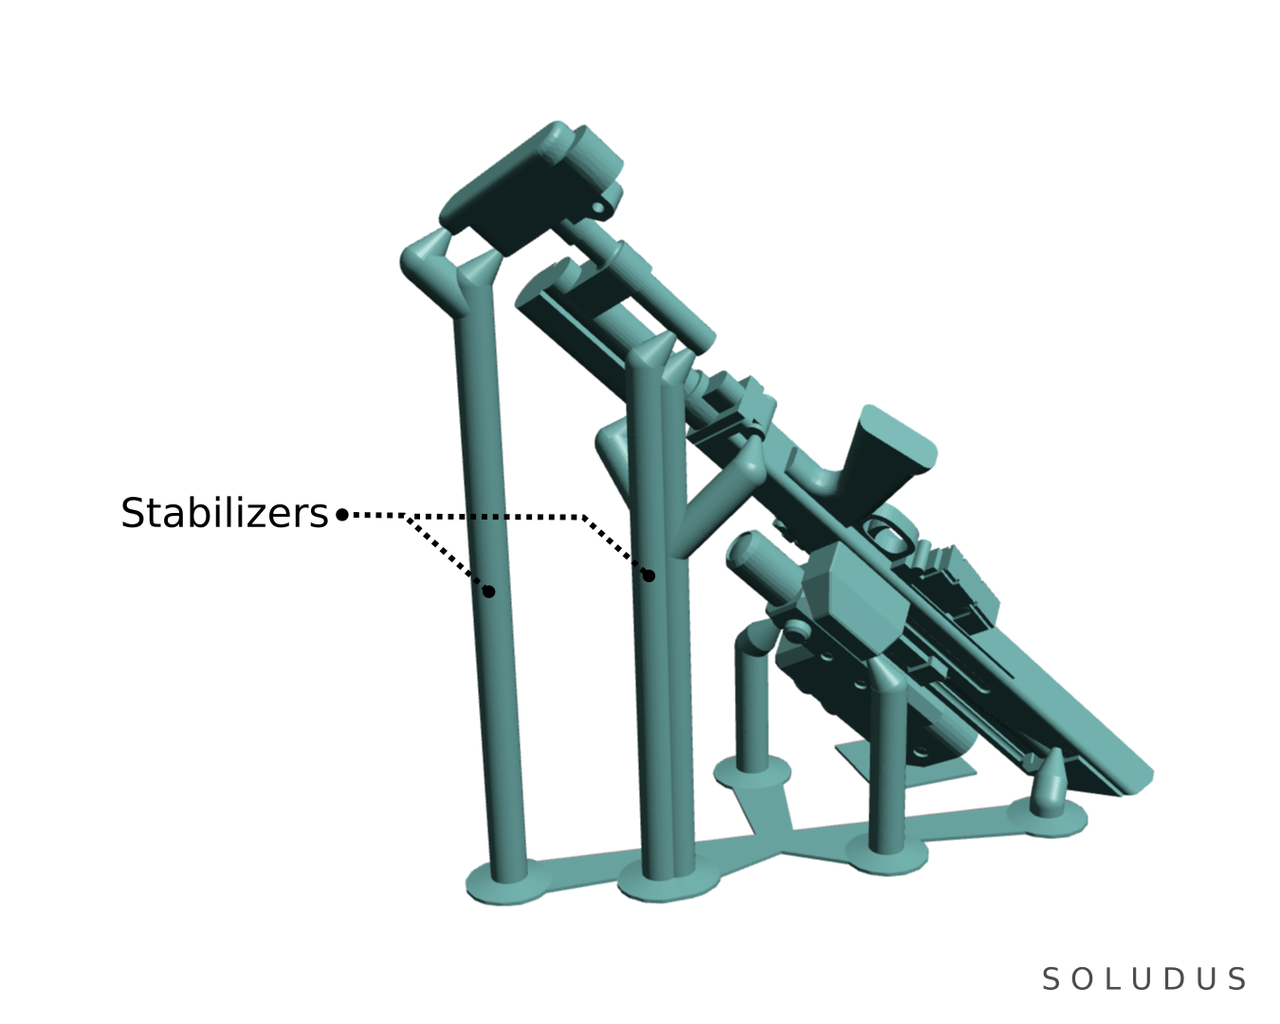 """INTRO - Built-in Brims and """"Stabilizers"""""""